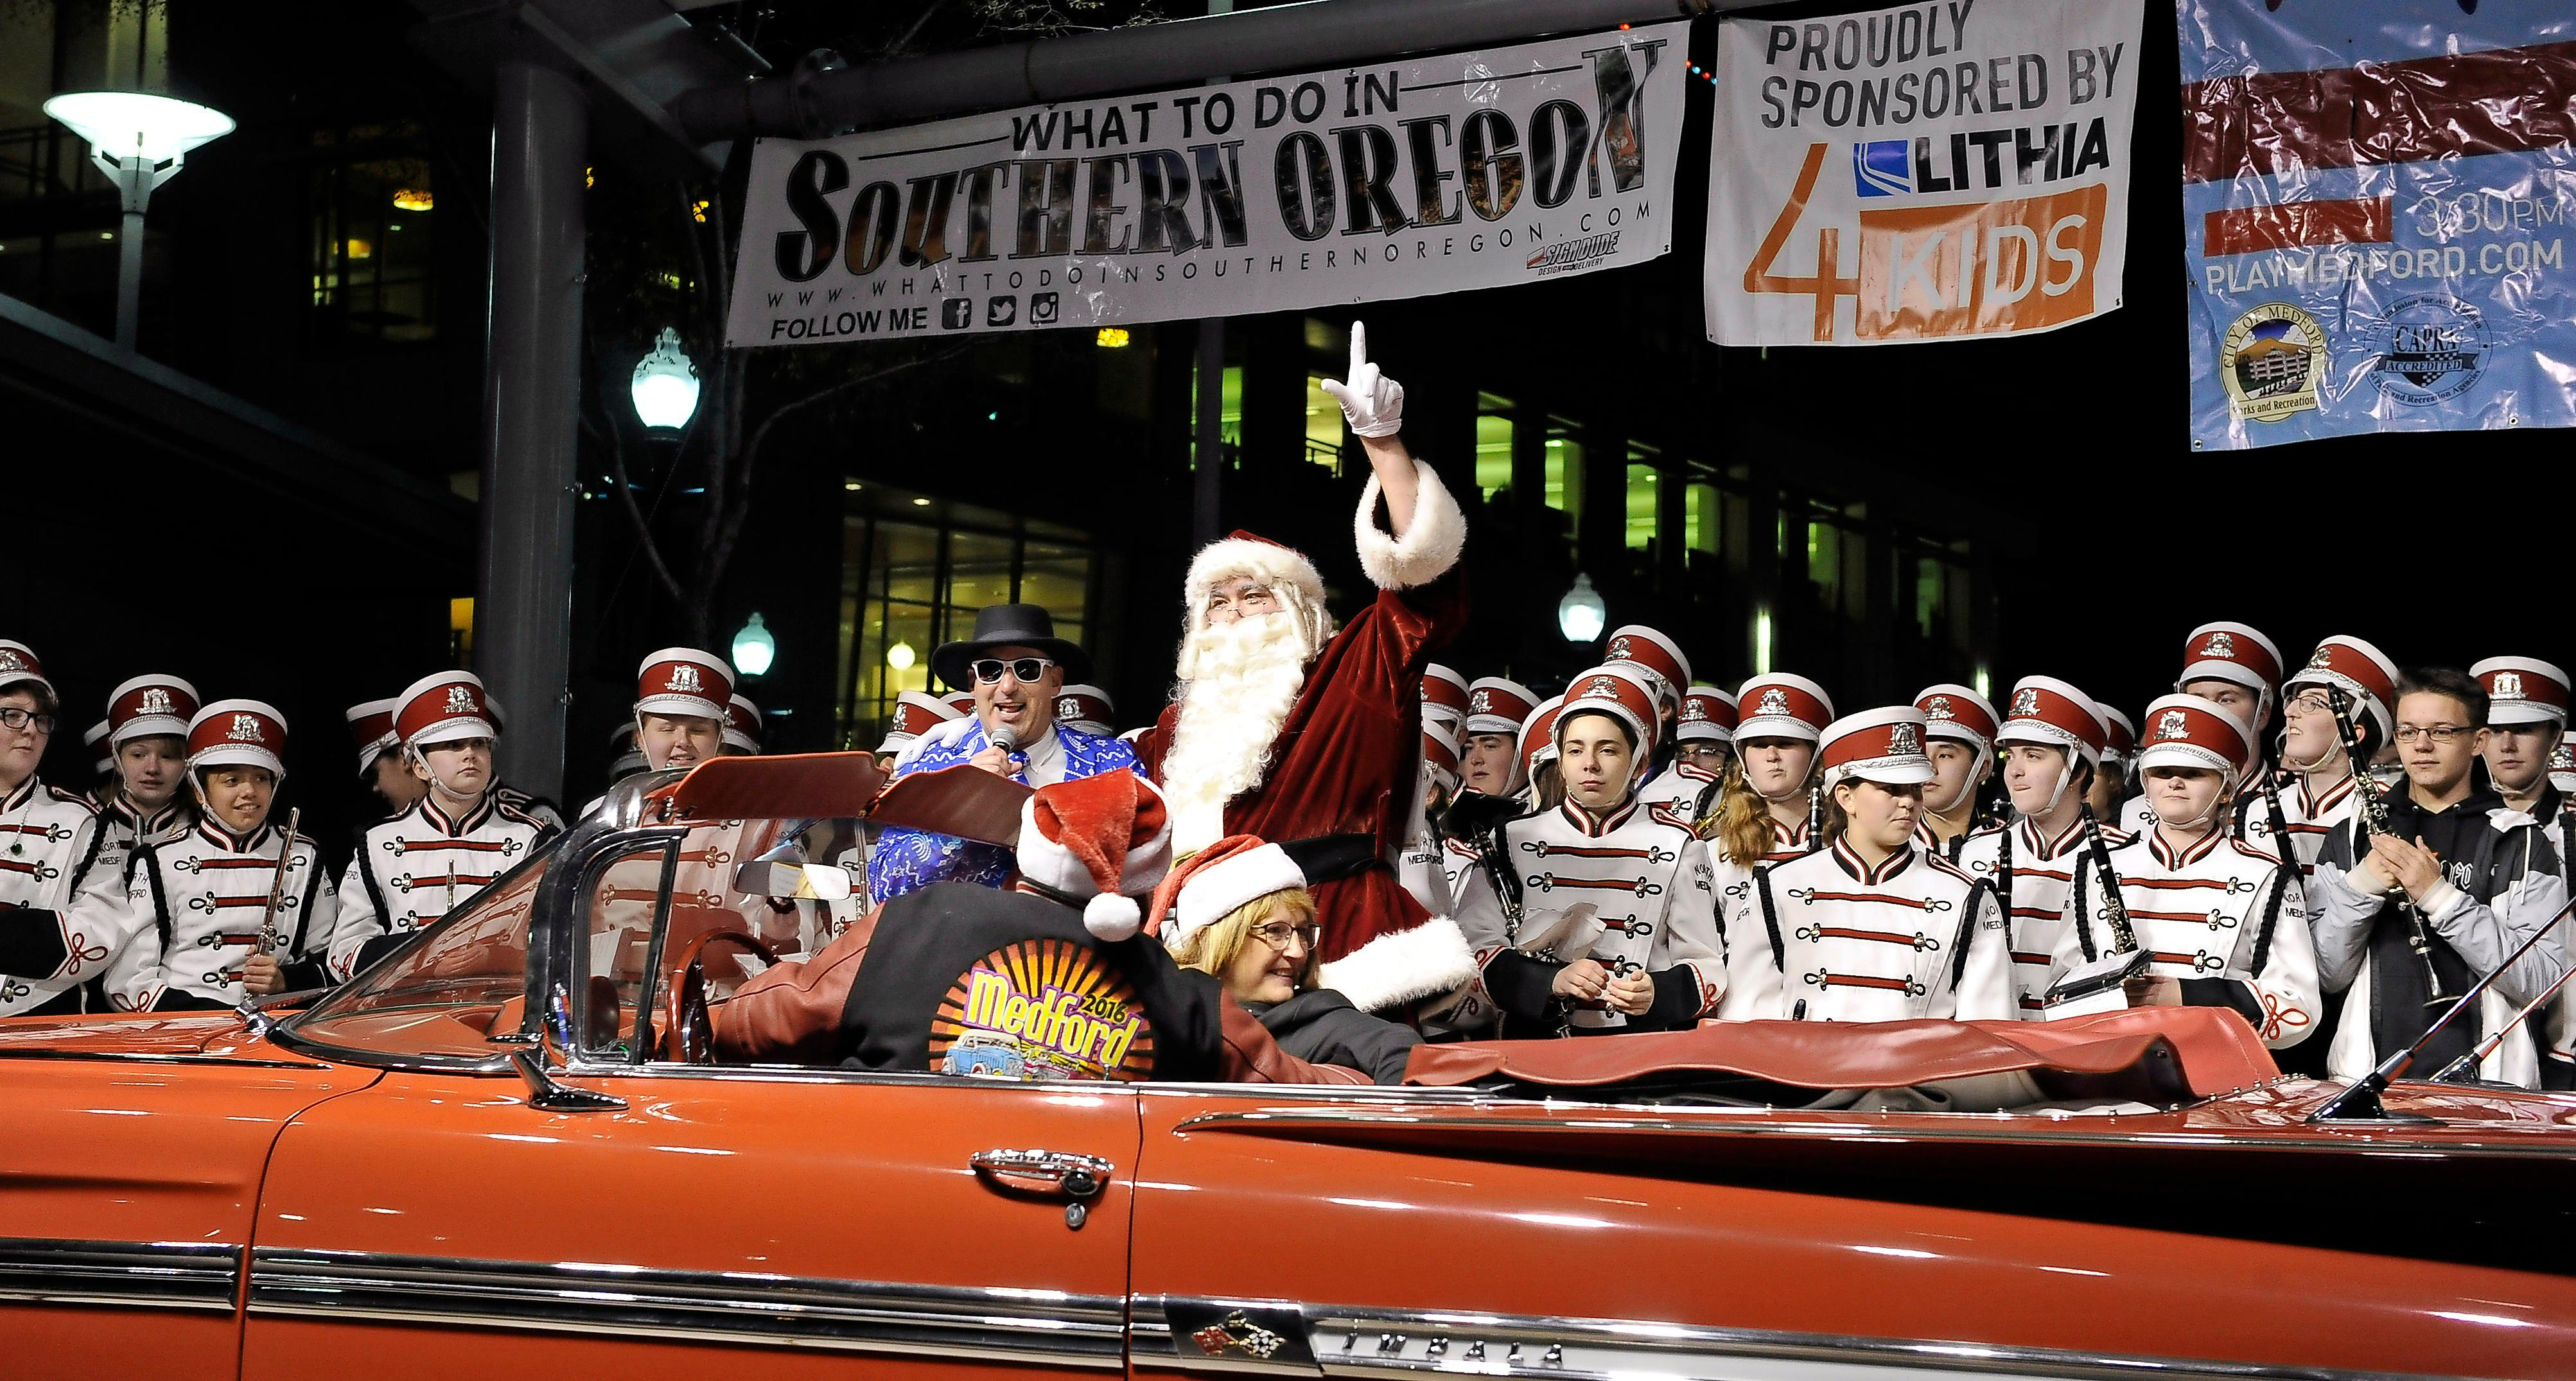 Andy Atkinson / Mail TribuneSanta pulled up onto stage in front of North Medford Marching Band at Pear Blossom Park Saturday evening.